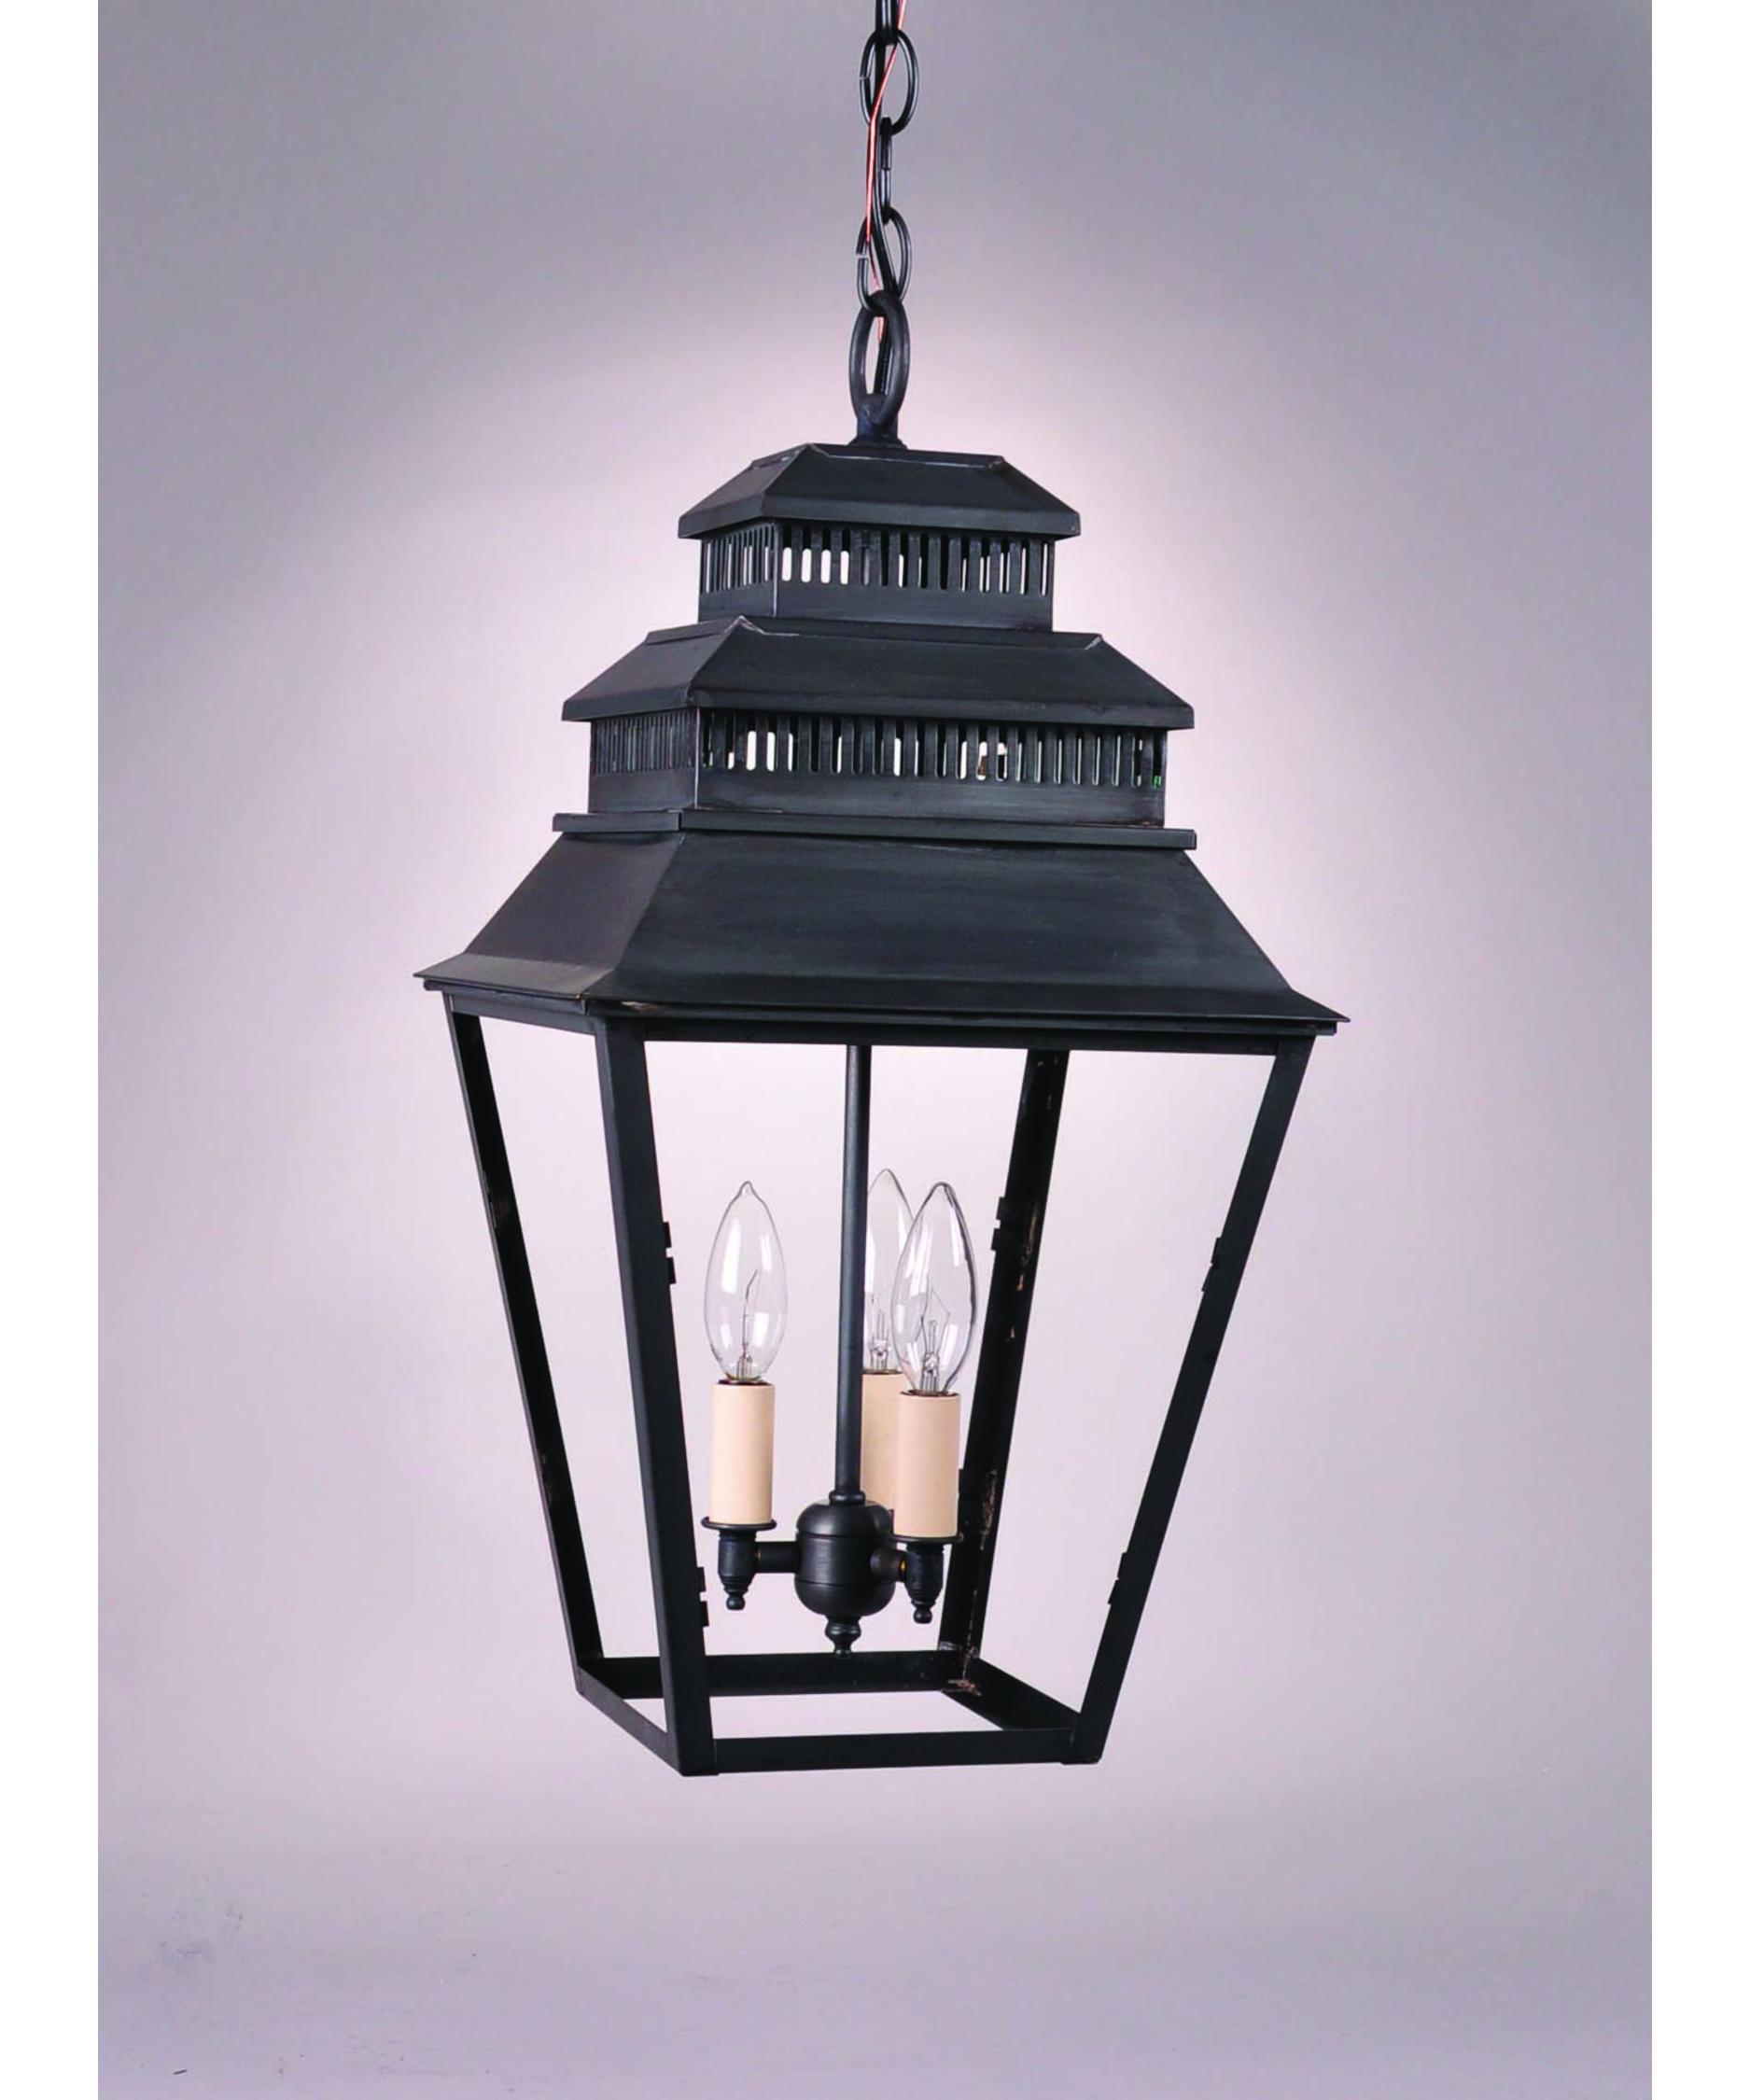 Outdoor hanging lamp - Shown In Antique Brass Finish And Clear Glass